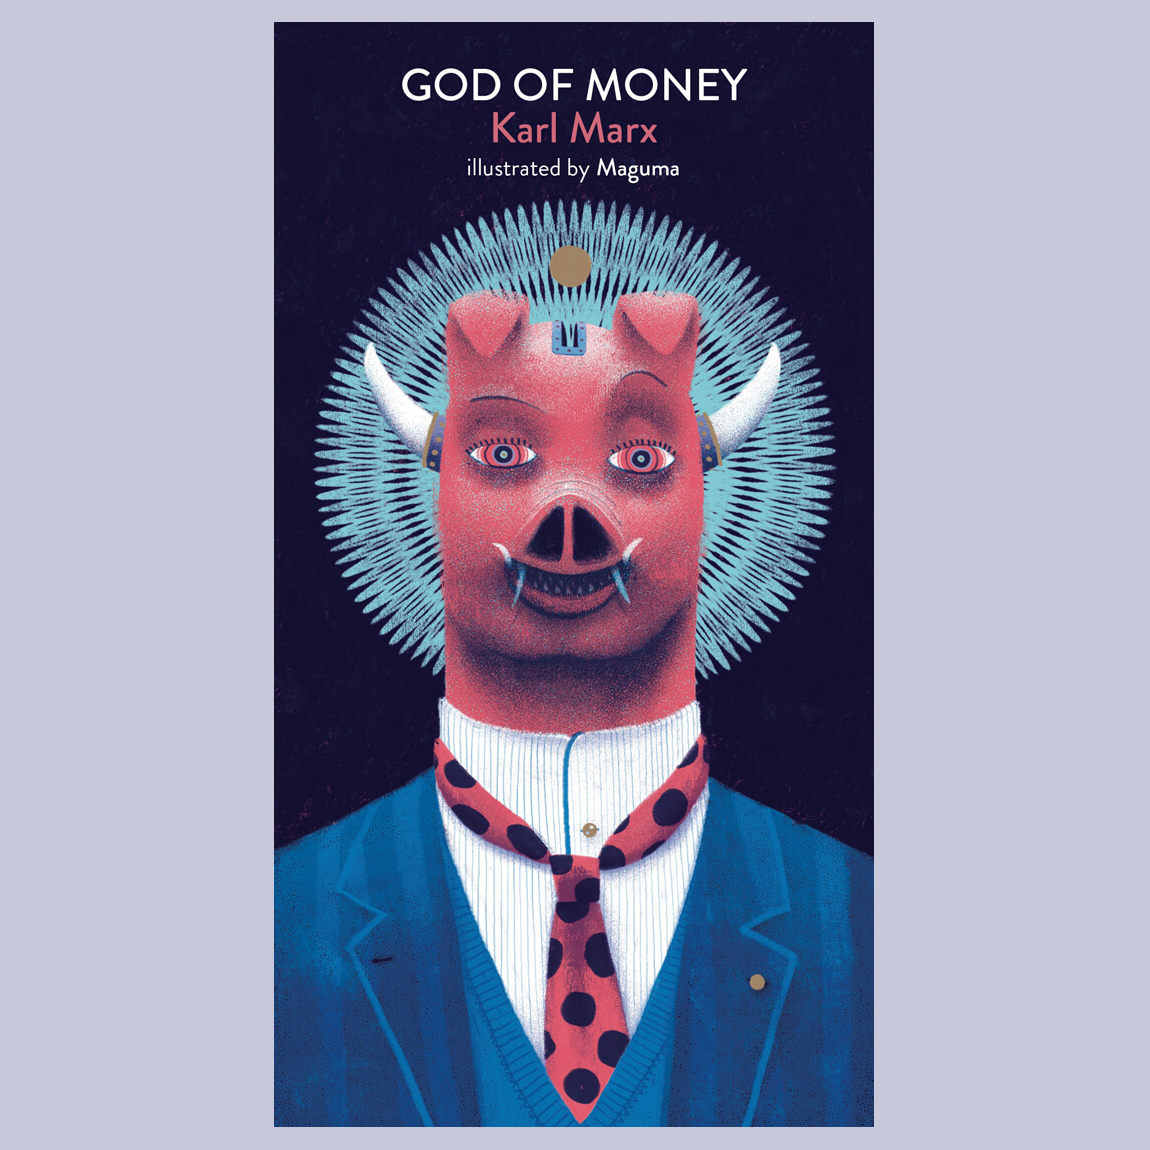 The God of Money